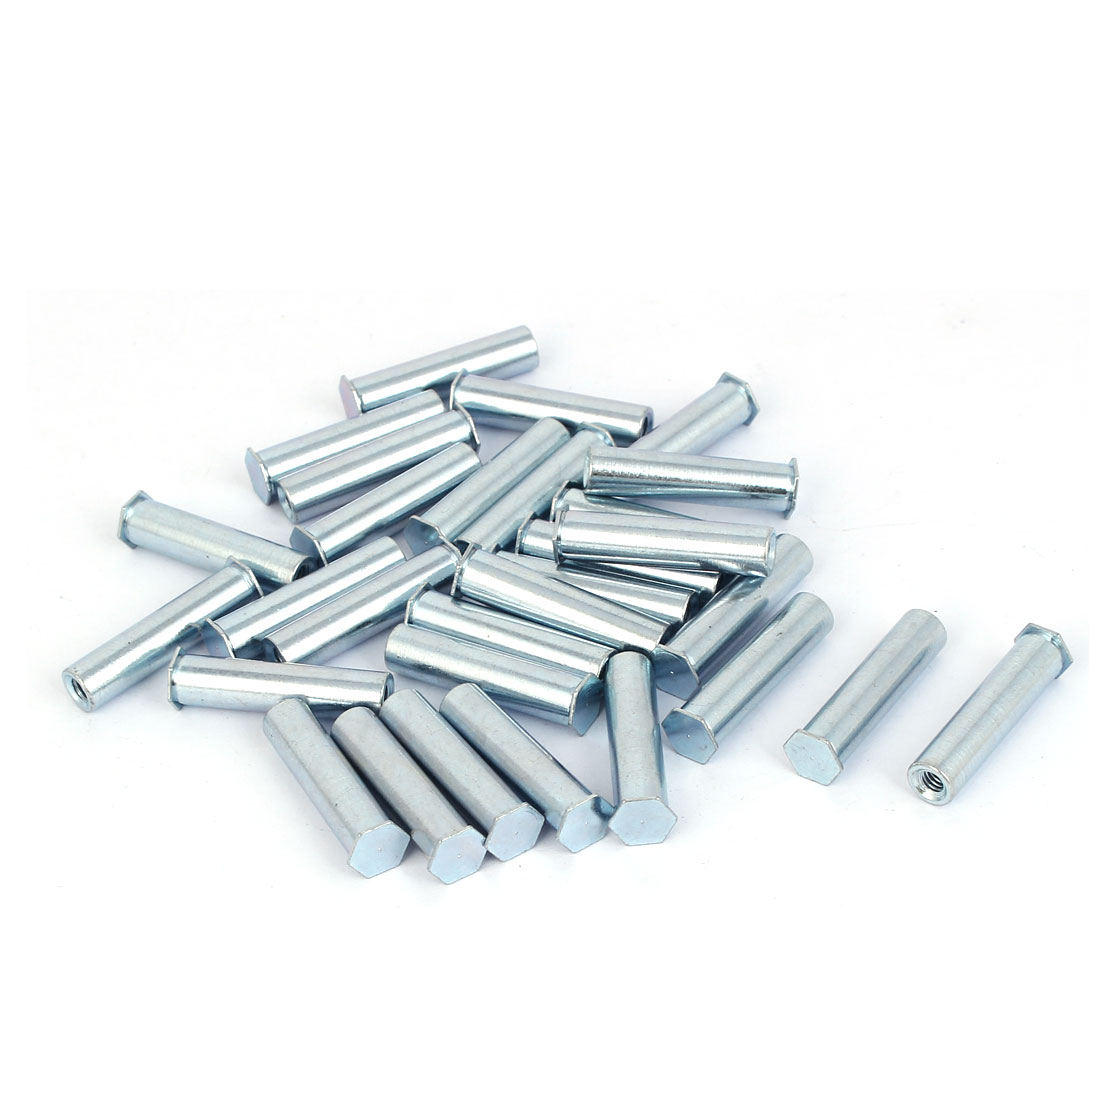 Carbon Steel Zinc Plated Hex Head Full Thread Self Clinching Standoff Silver Tone M4x30mm 30pcs